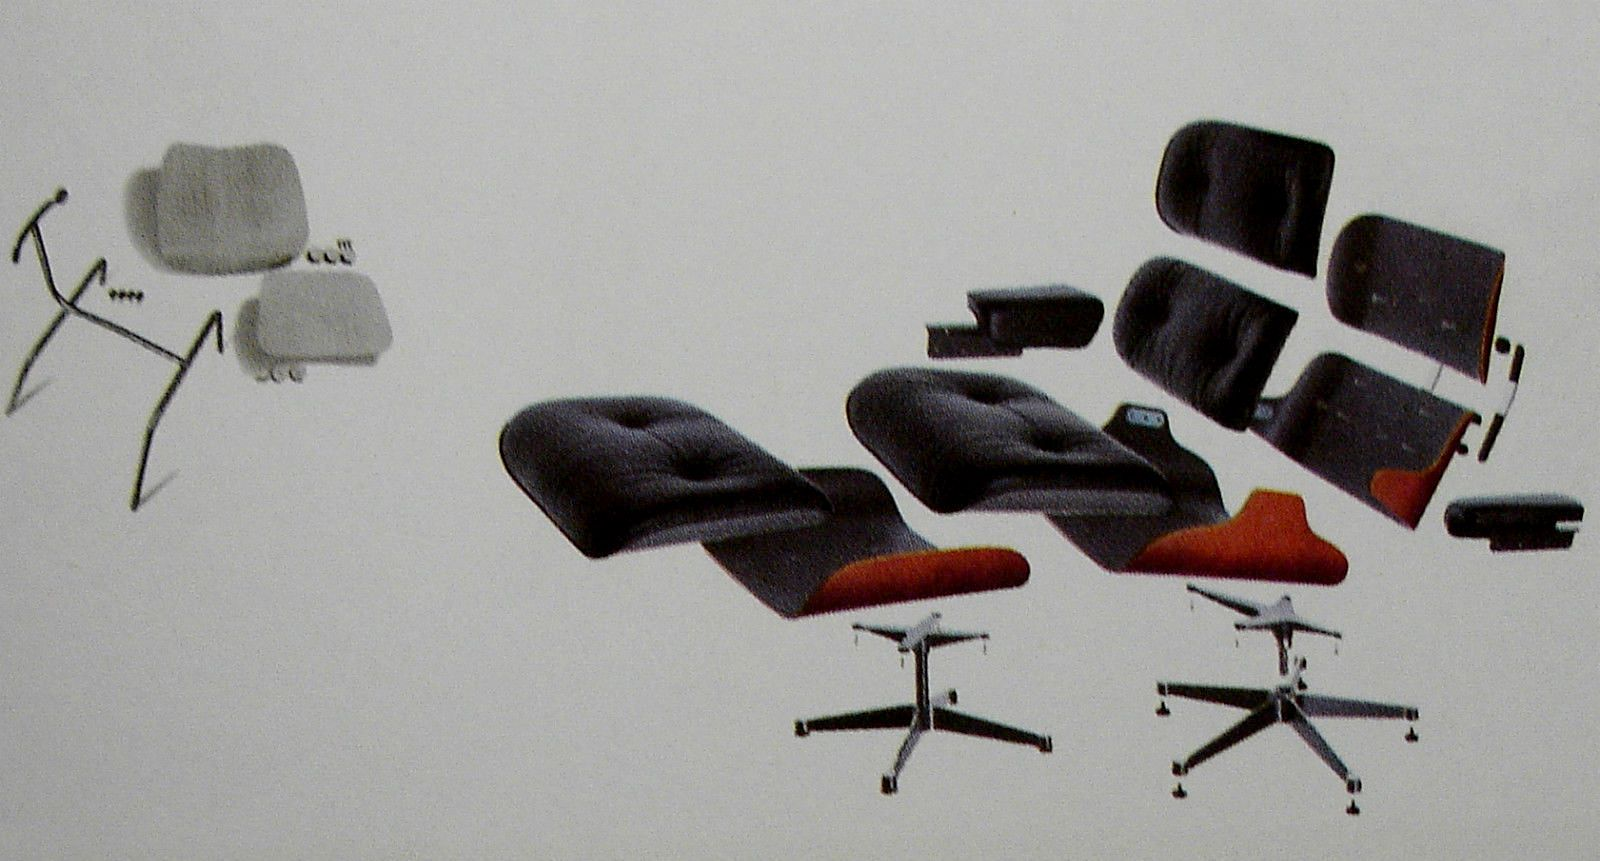 Exploded Views Of Vitra Eames Lounge Chair And Ottoman And A Disassembled Dcm Eames Eames Lounge Chair Lounge Chair